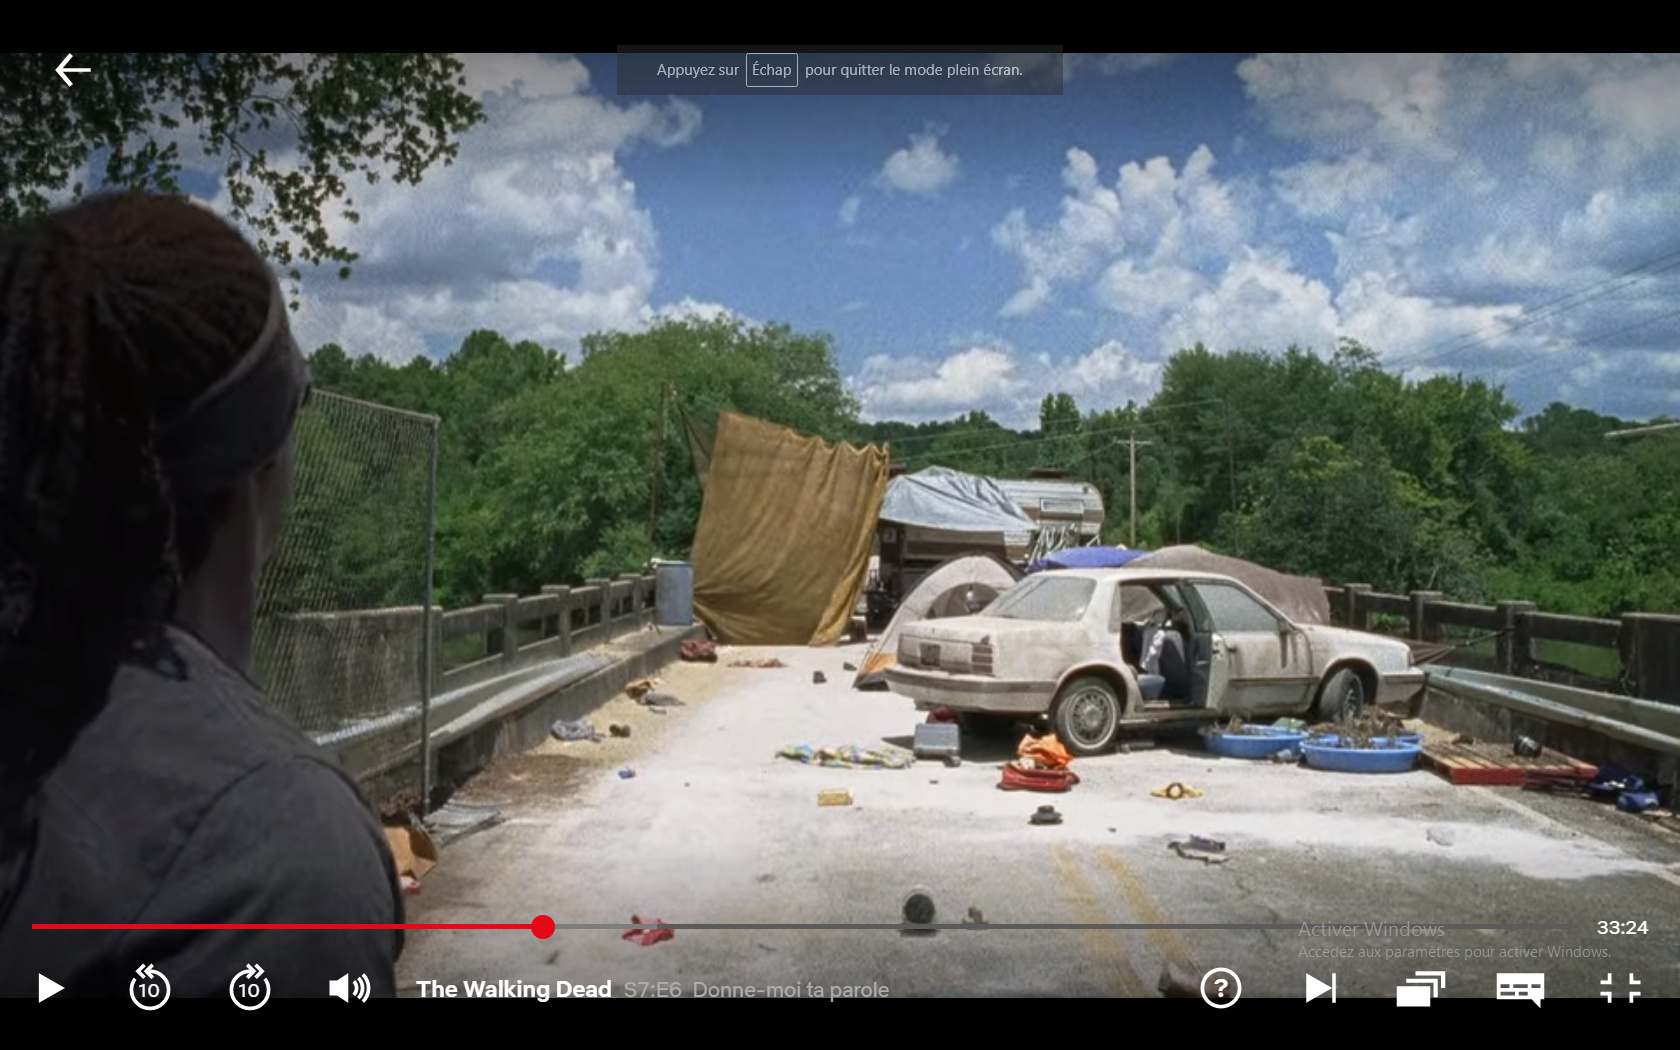 The Walking dead, storybording with Google Earth and Street View - Page 6 Captur27